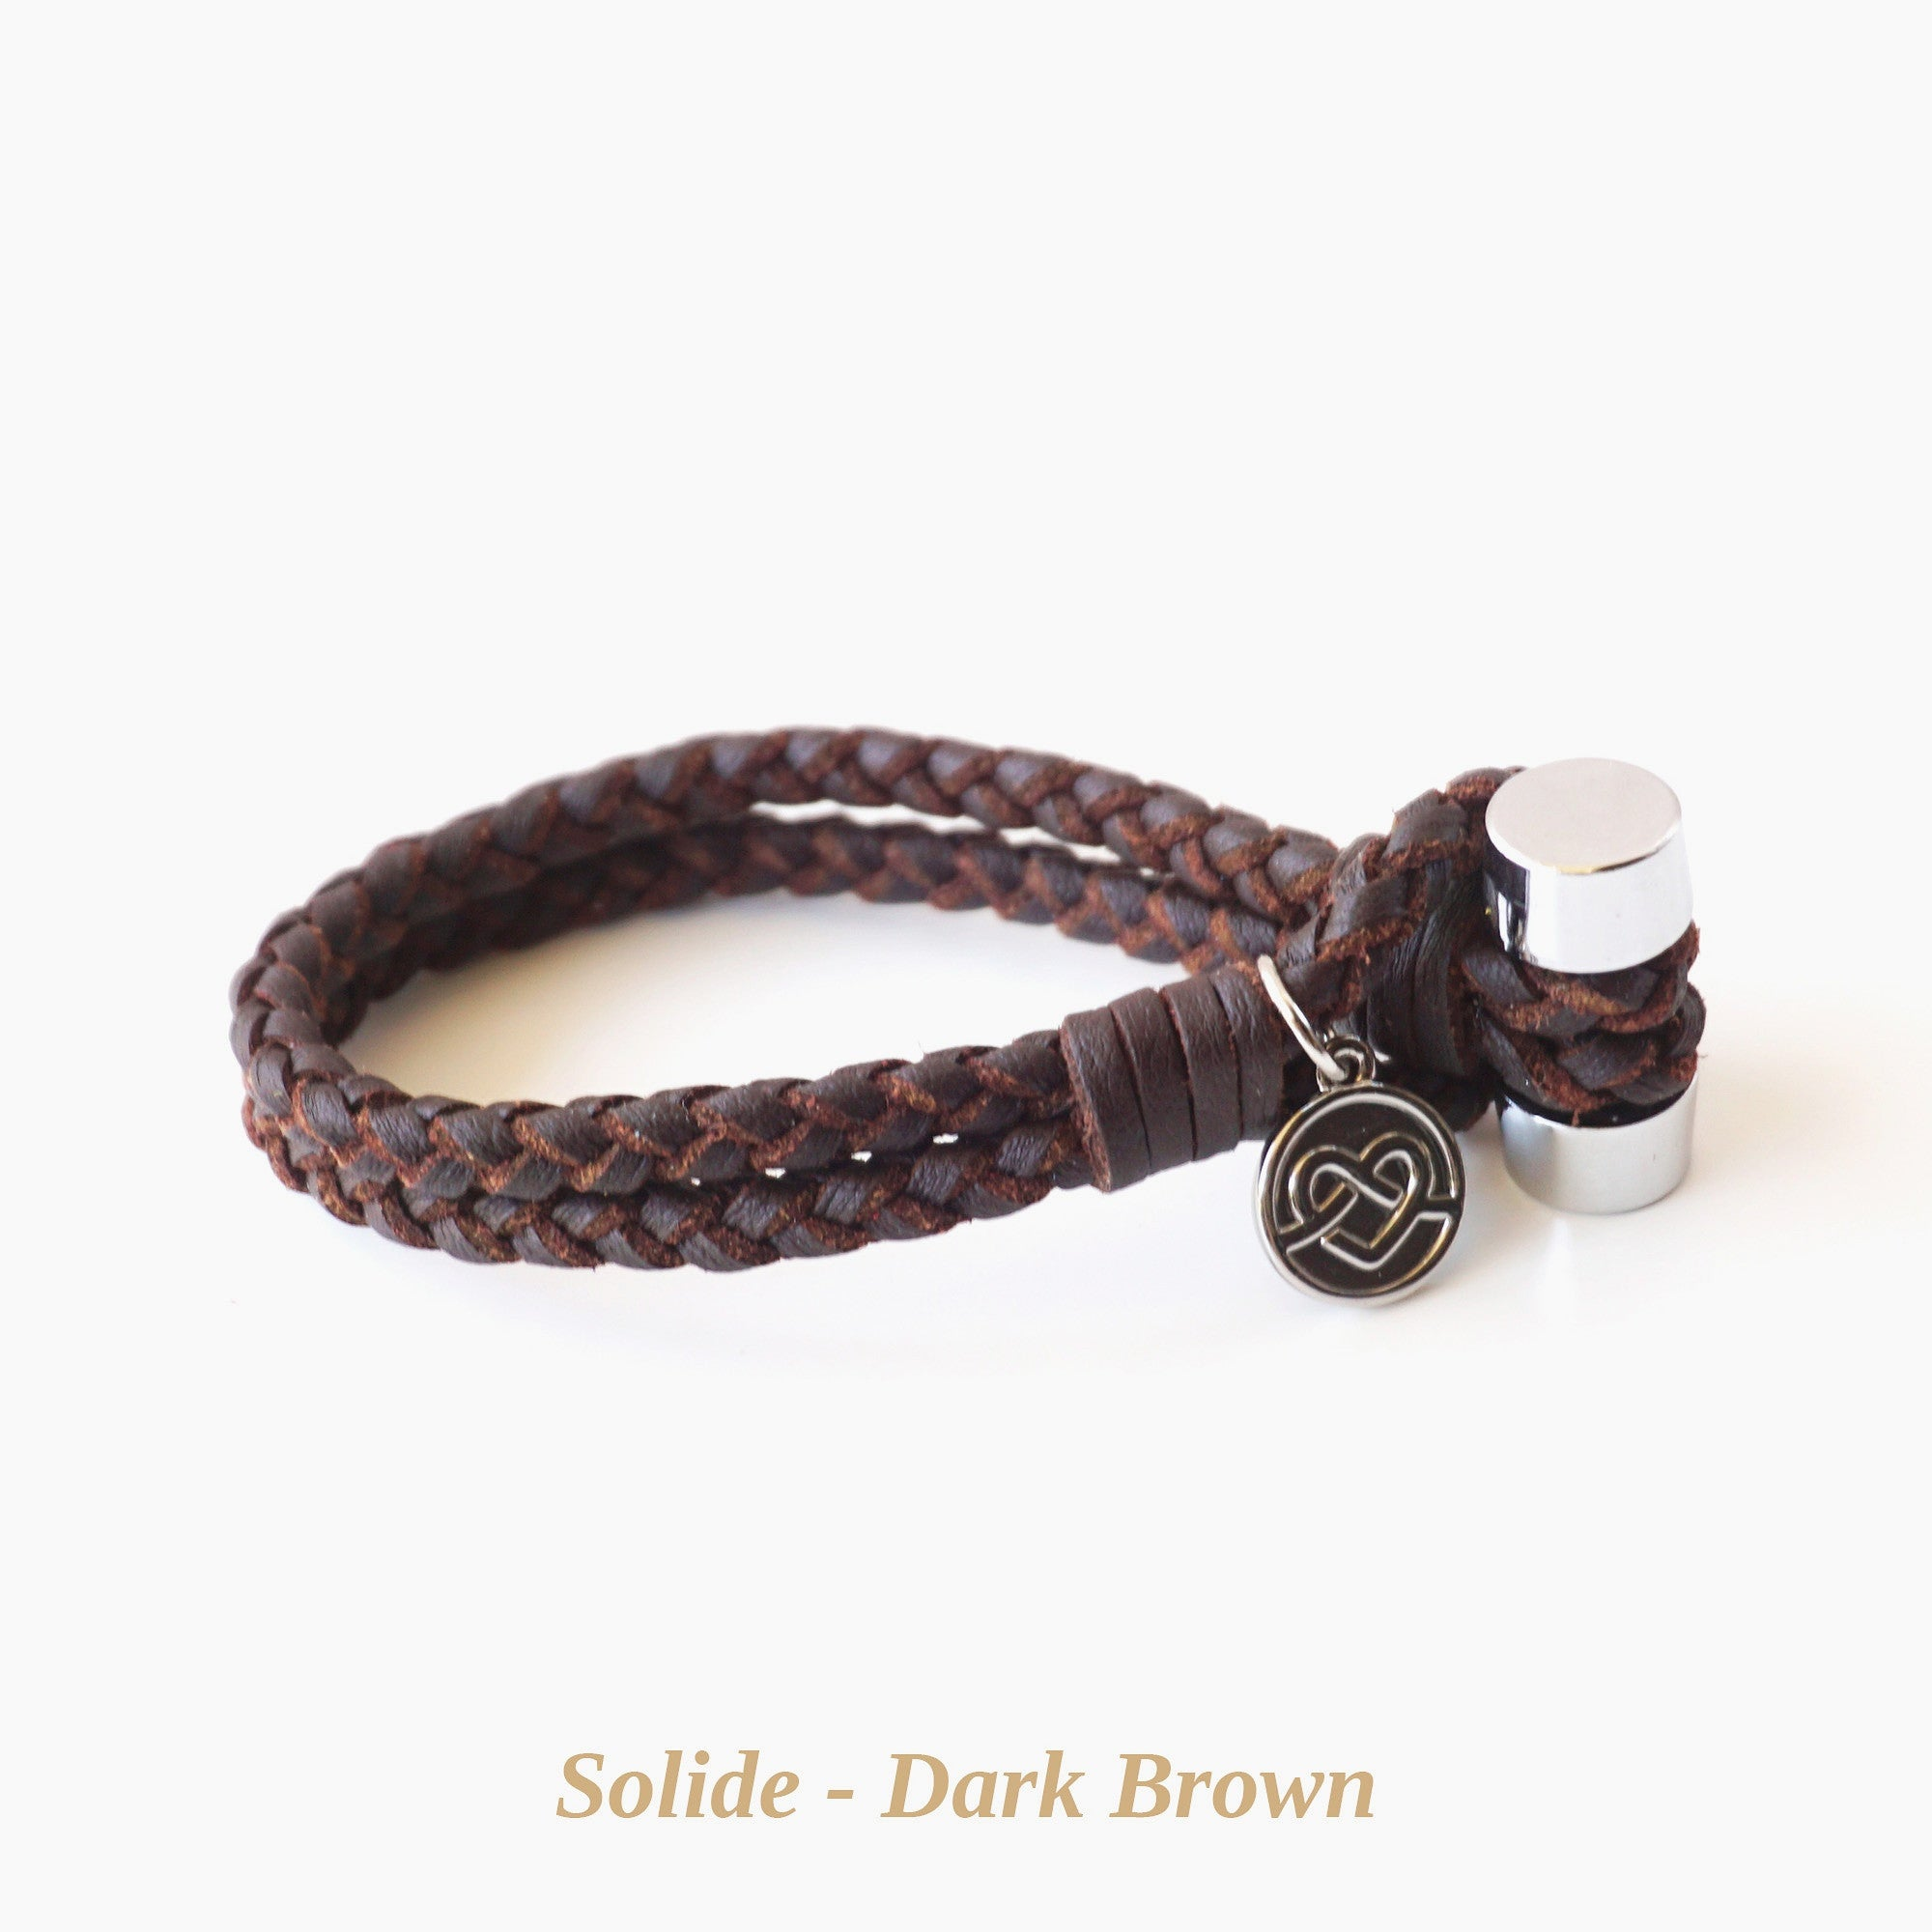 Dark Brown Solide Bracelet